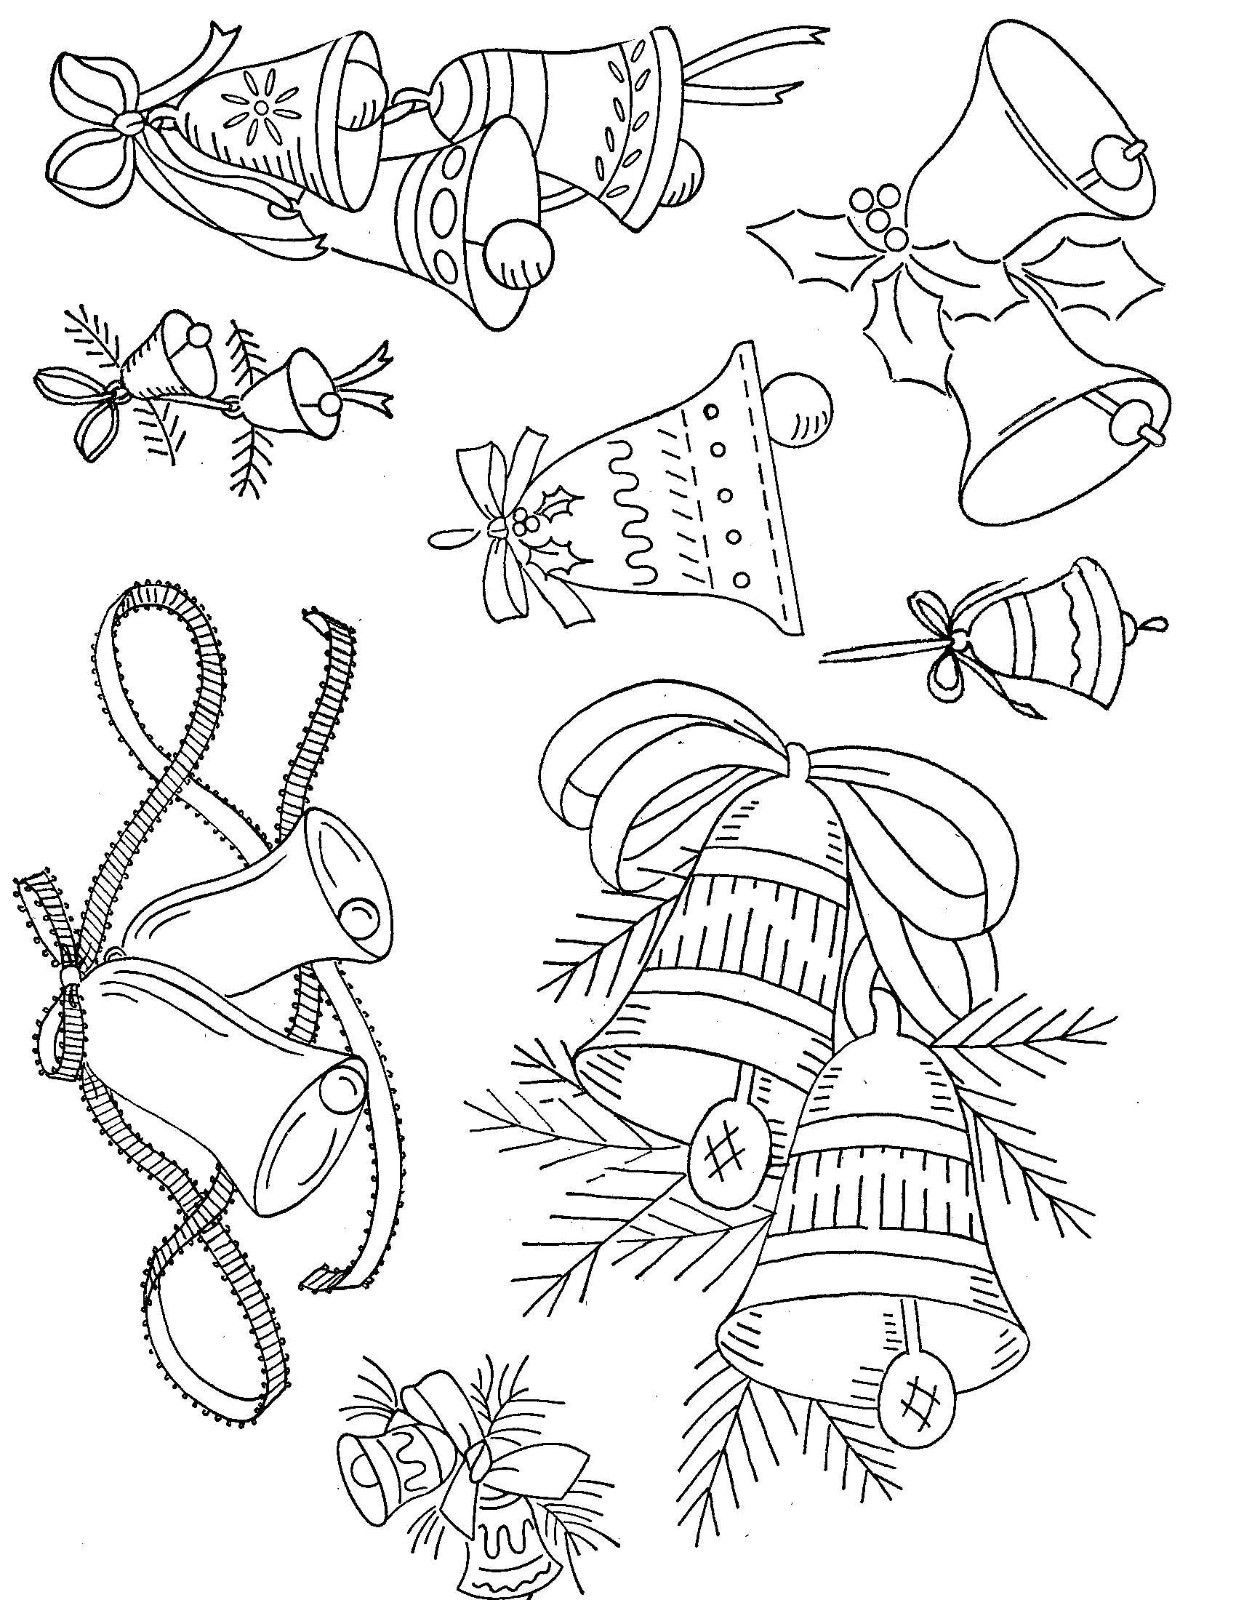 Details about Vintage Embroidery Transfer Repo Over 100